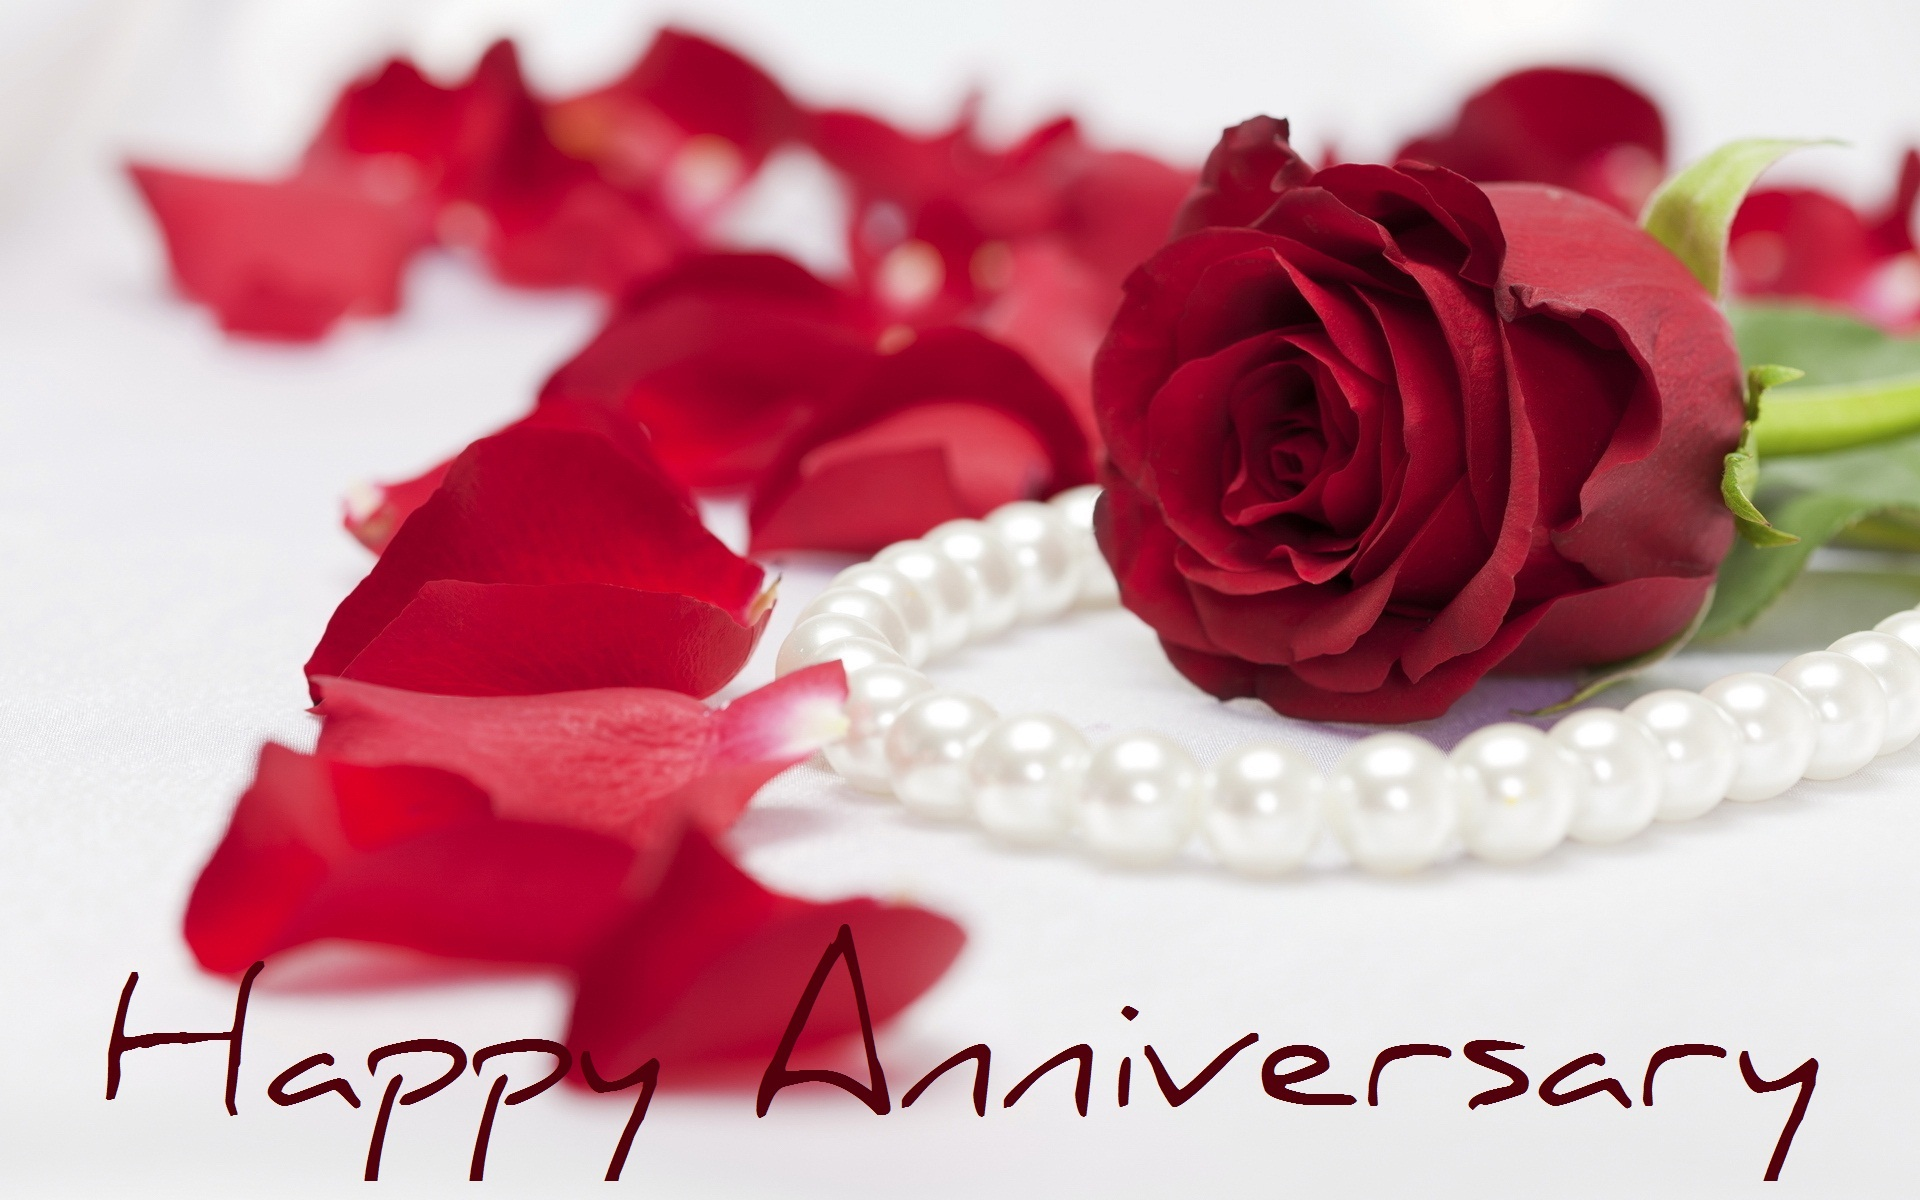 Happy anniversary cards free psd vector ai eps format